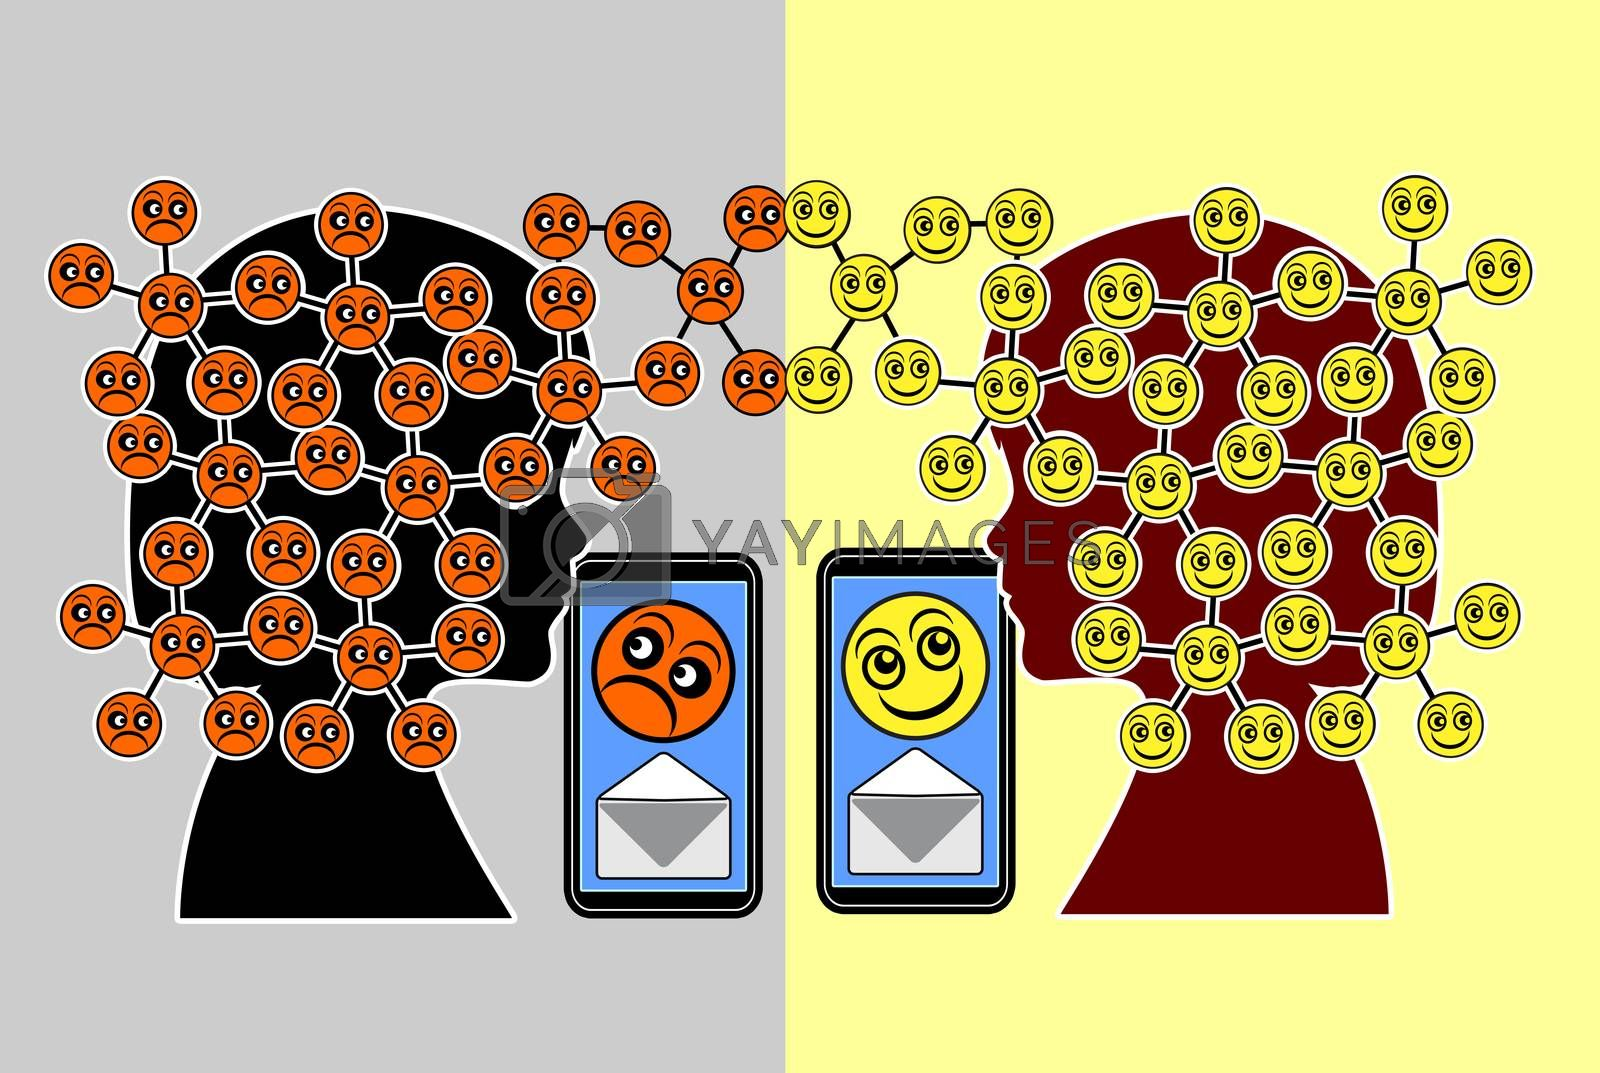 Messages may cause either pleasant feelings or depressions in children